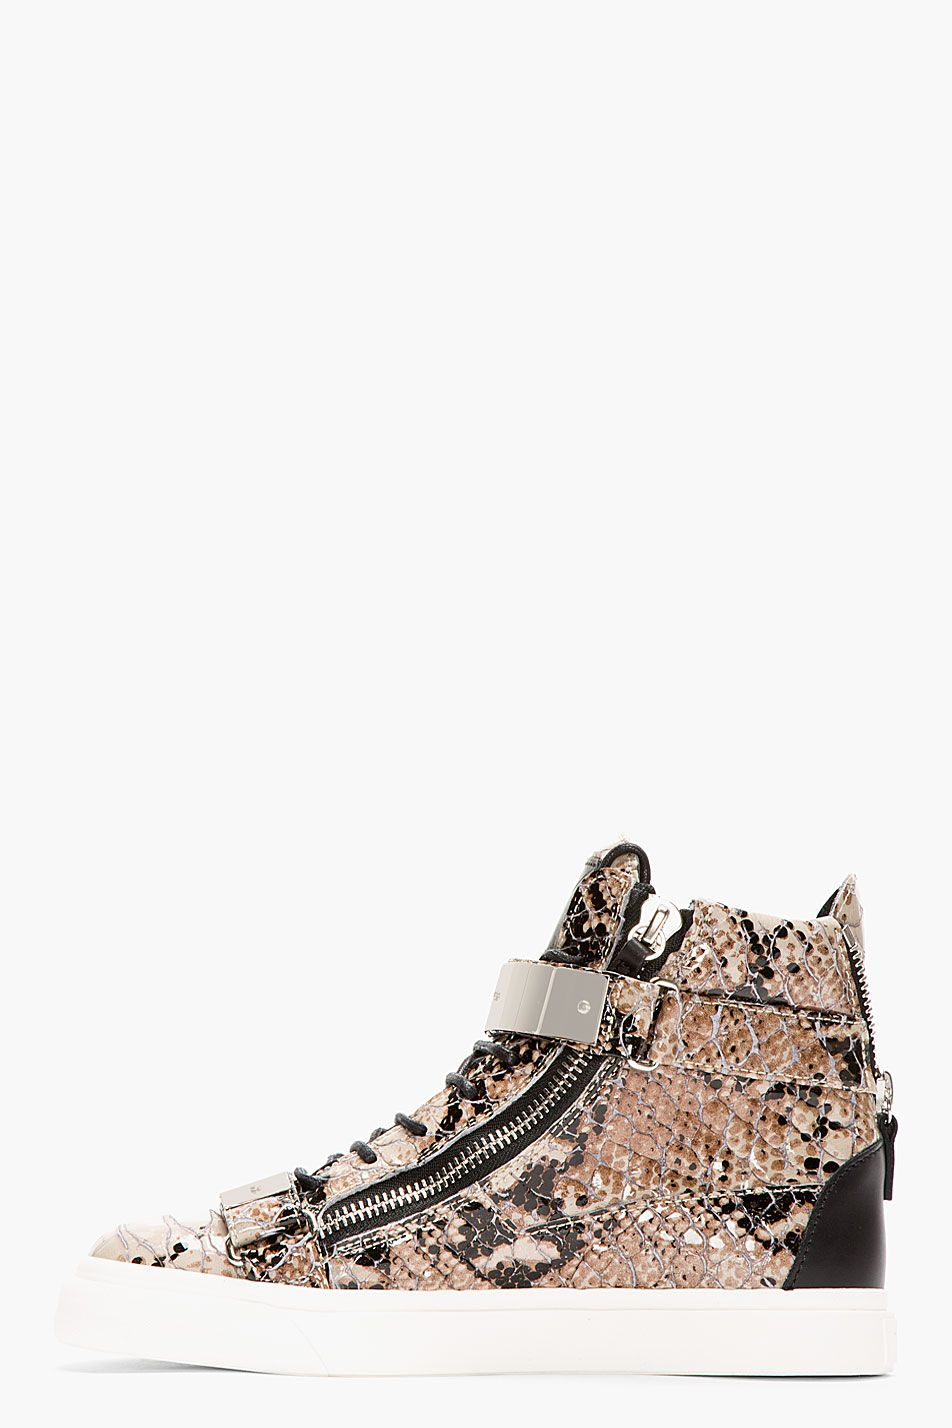 GIUSEPPE ZANOTTI Grey Leather Python Atlantide High-Top Sneakers